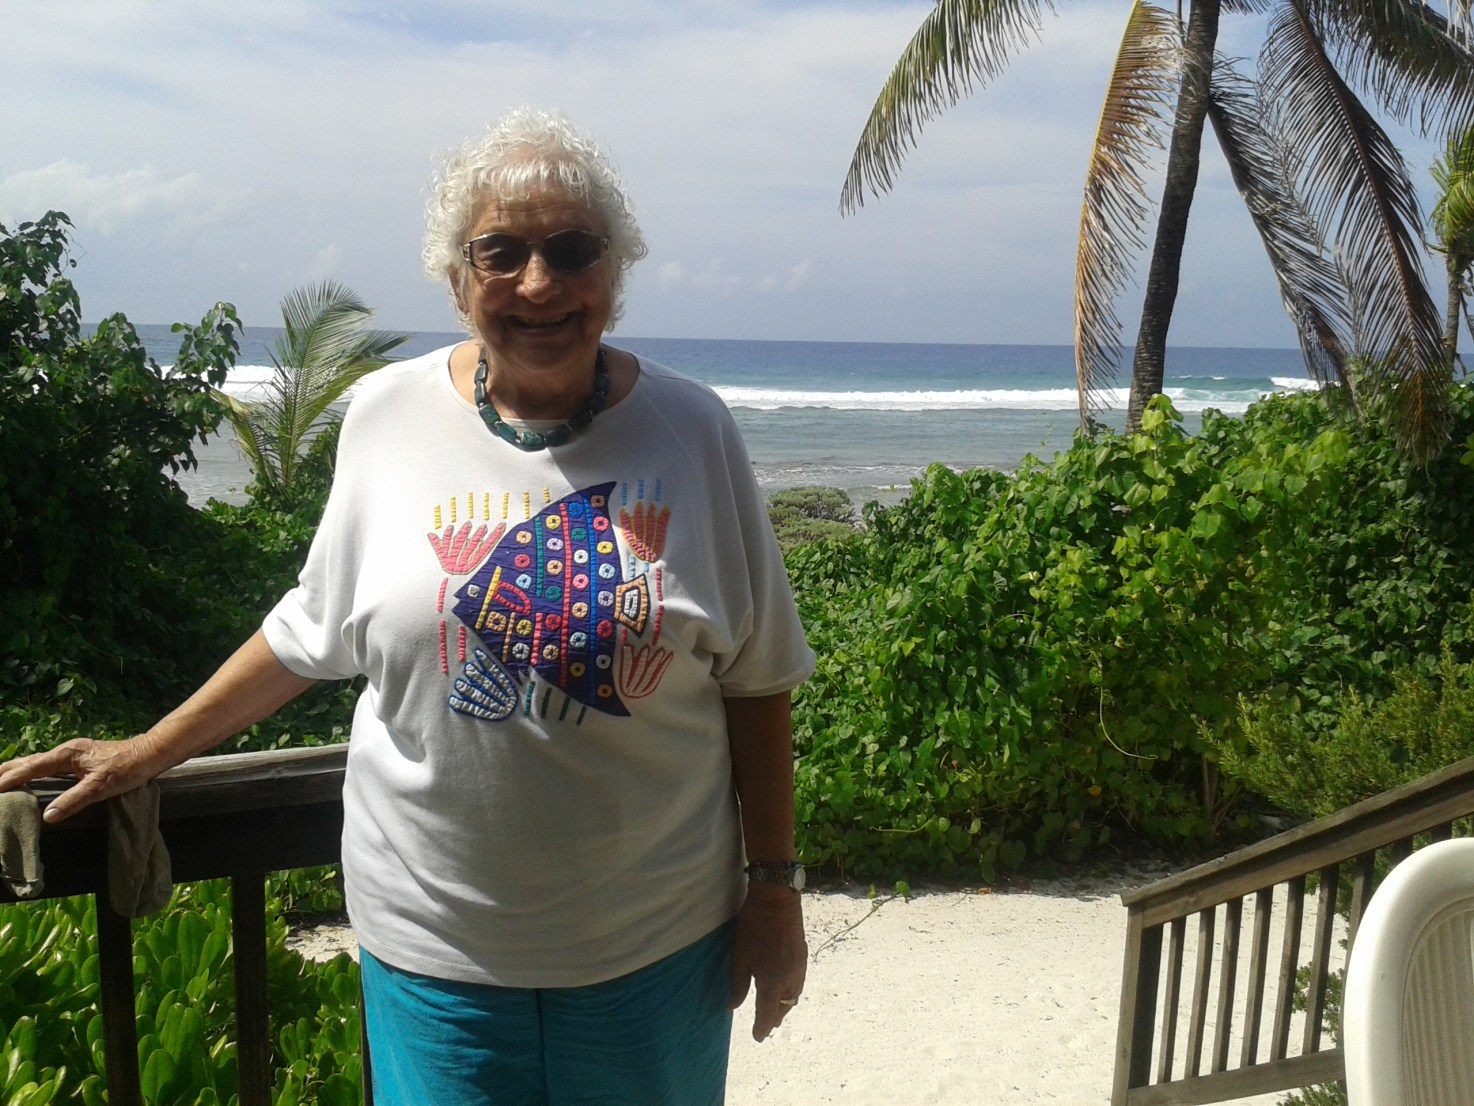 Gladys Howard runs the legendary Pirates Point resort on Little Cayman